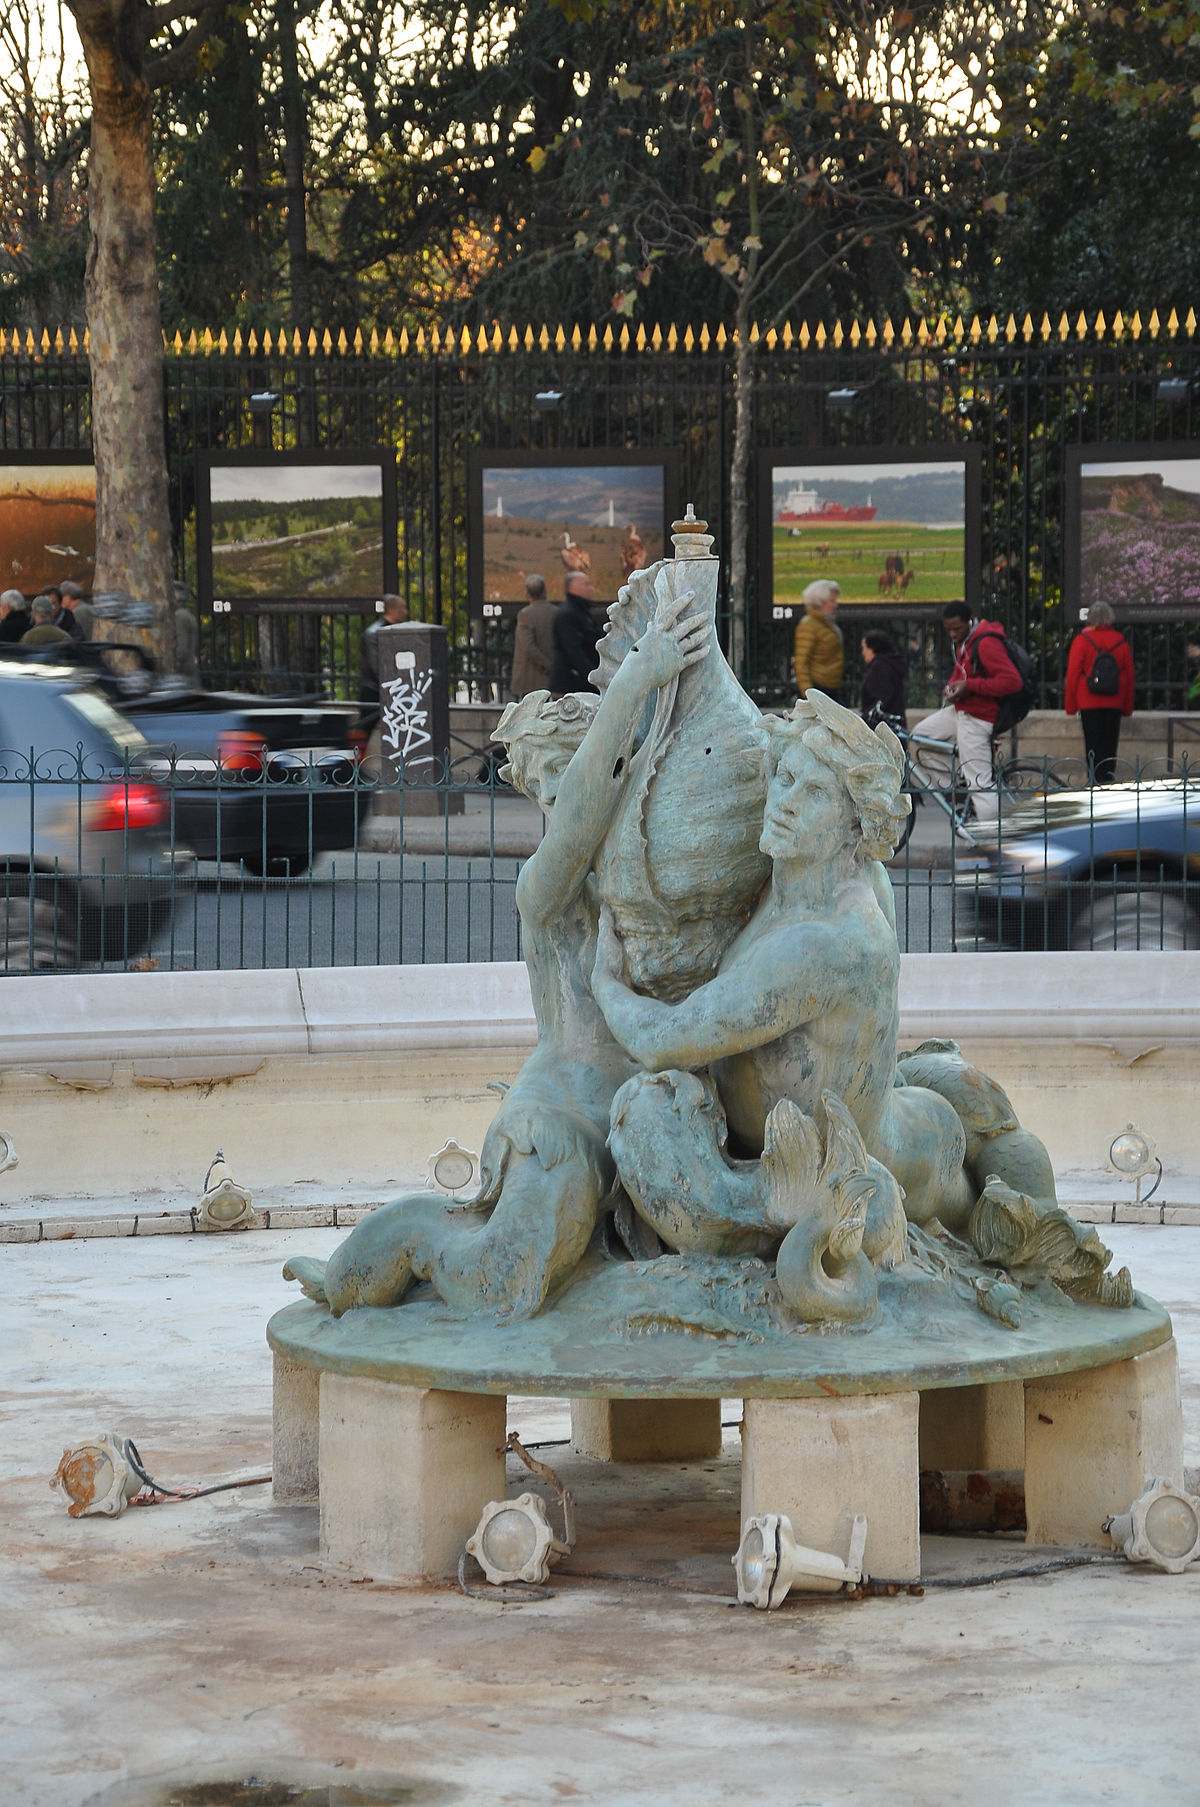 Fontaine du bassin soufflot wikip dia for Fontaine bassin